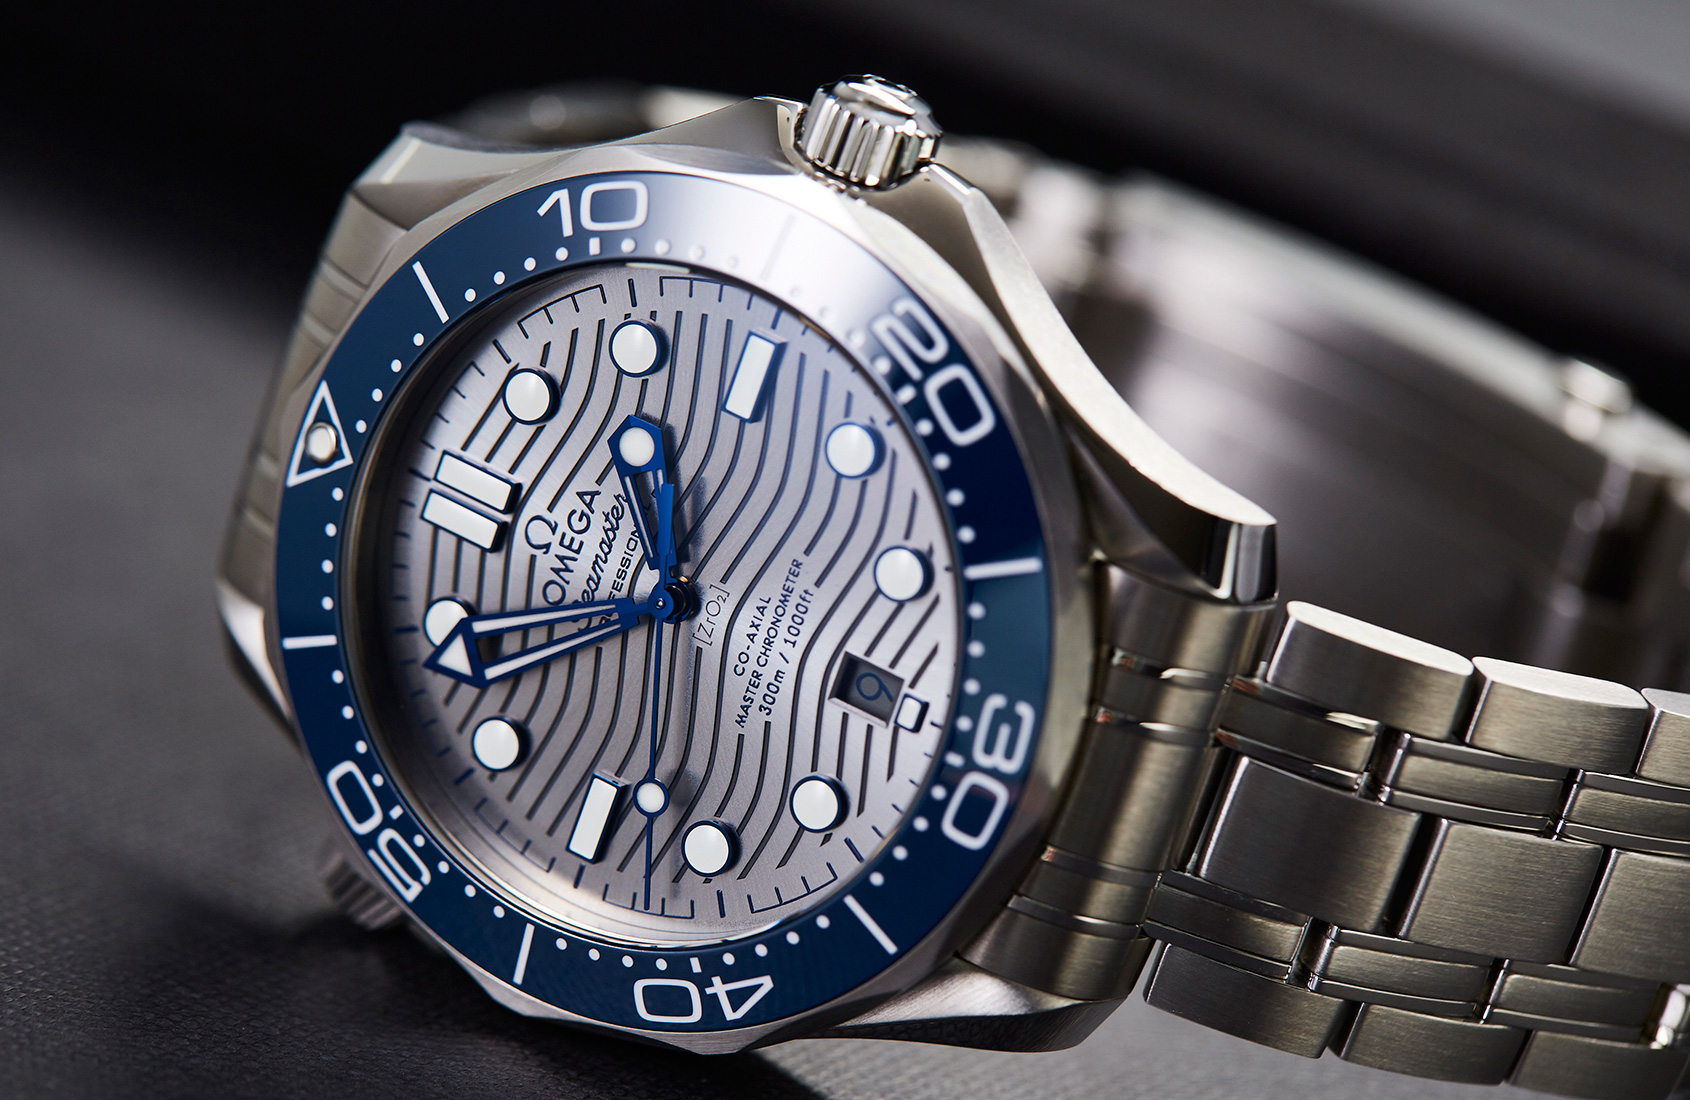 In Depth The Omega Seamaster Professional 300m 25 Years